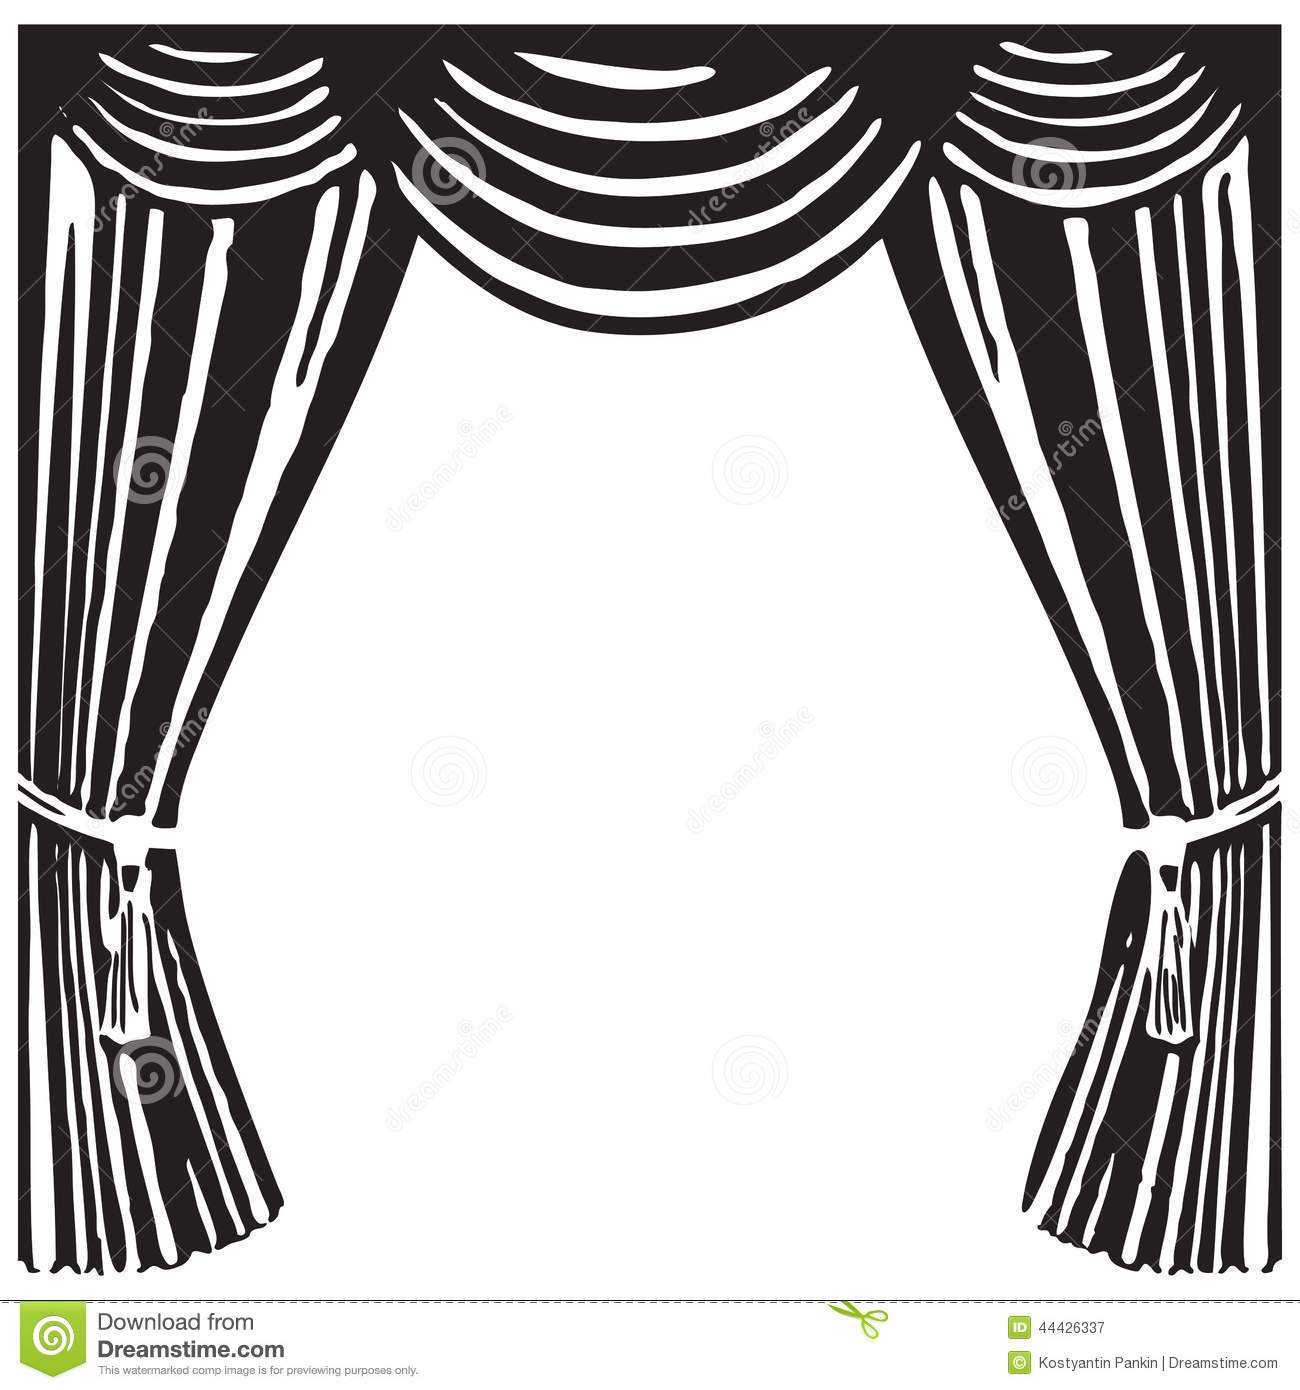 Stage clipart black and white graphic download Stage clipart black and white 4 » Clipart Portal graphic download